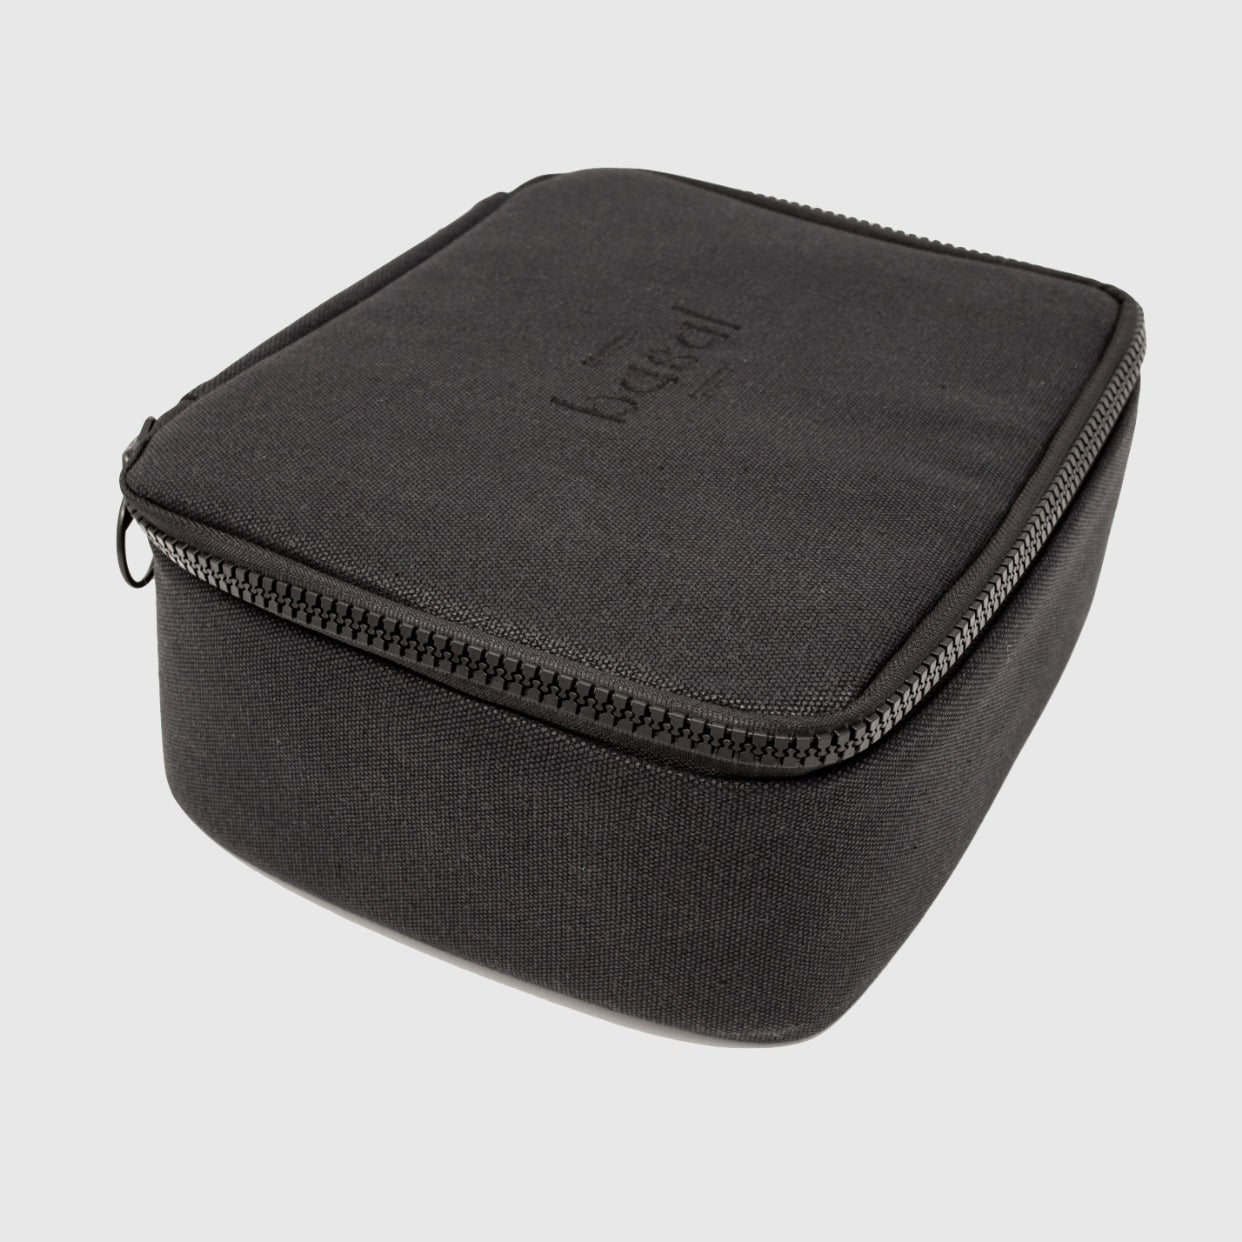 Basal Filter Coffee Traveler Carry Case Basic Barista Australia Melbourne